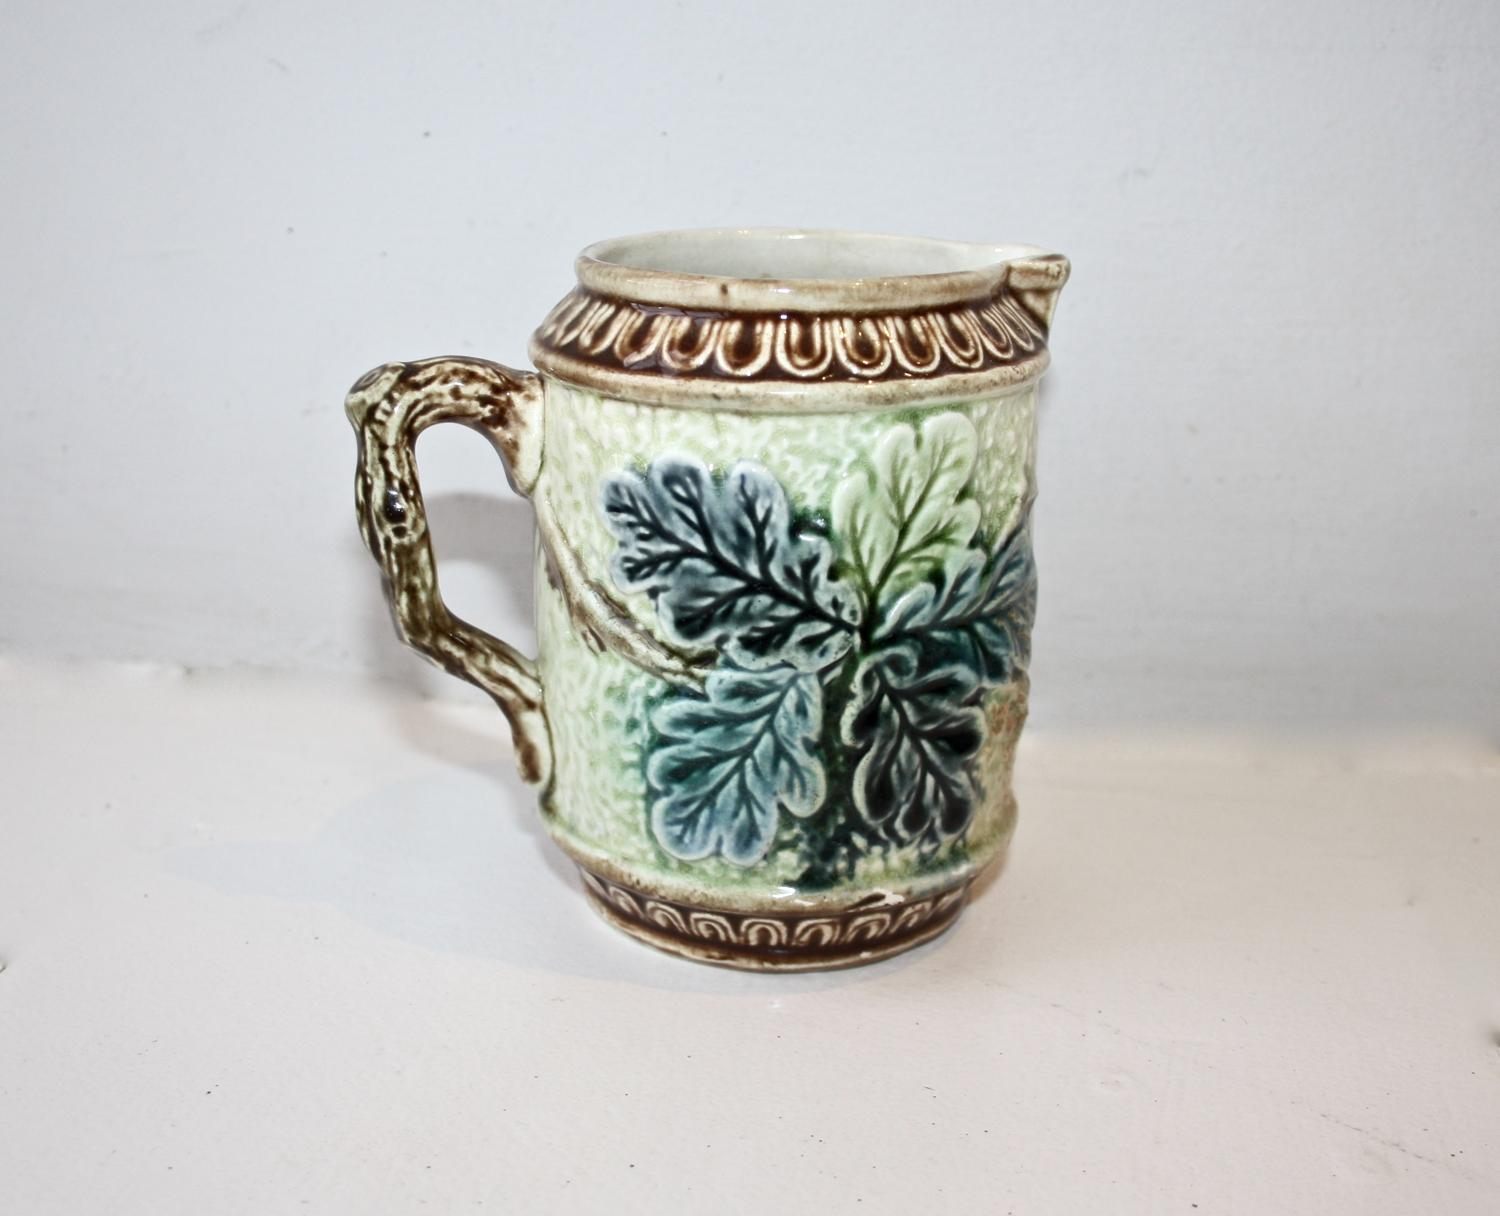 Small French majolica jug